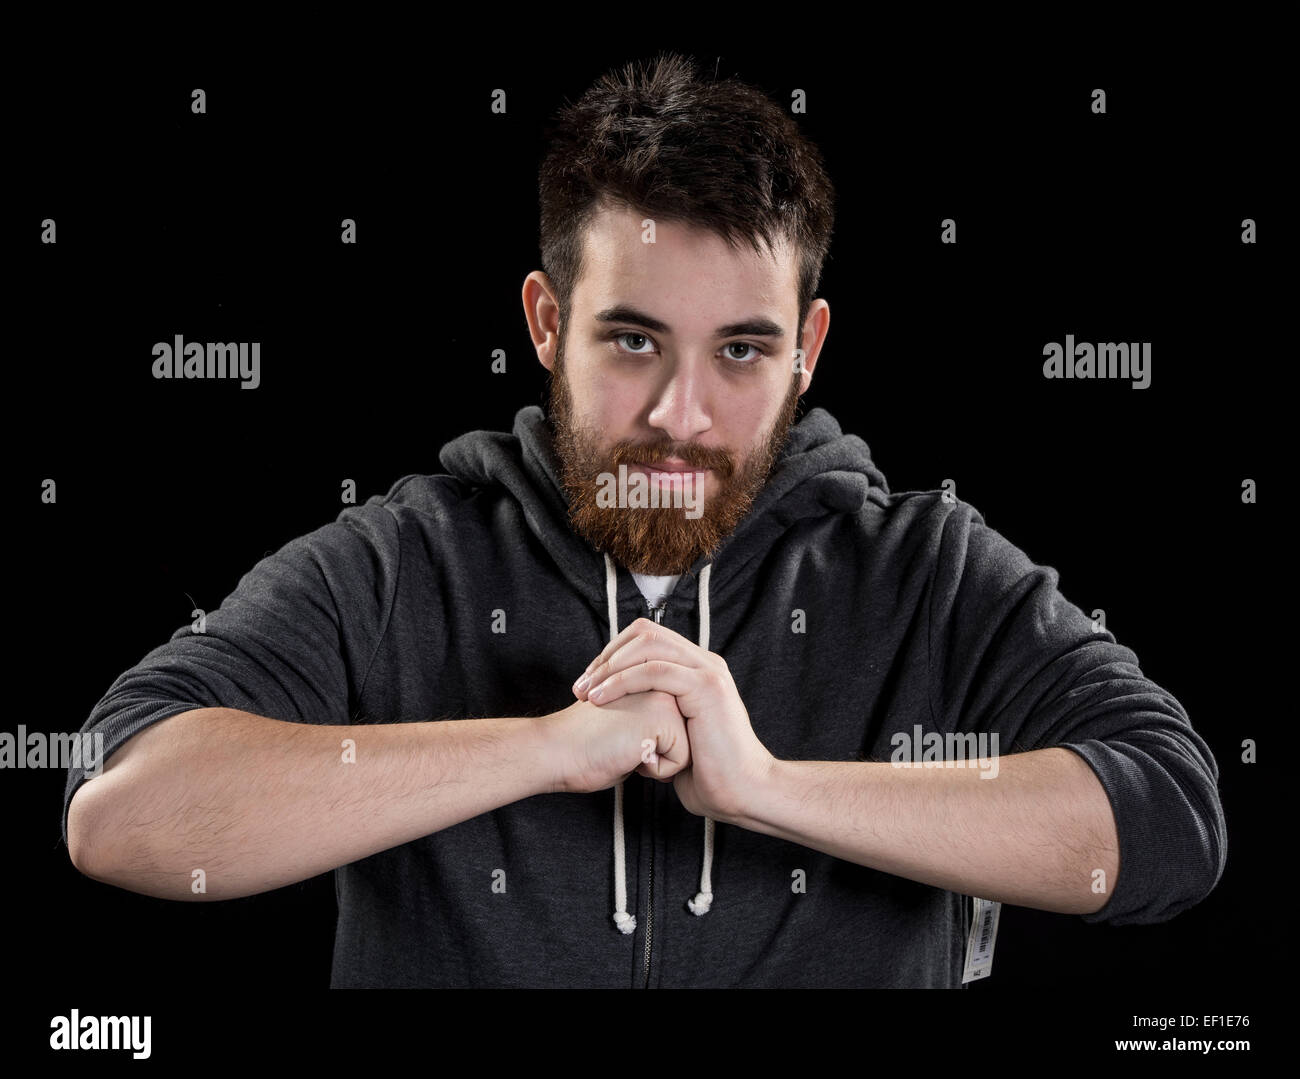 Serious Man with Closed Fist In Front his Body - Stock Image